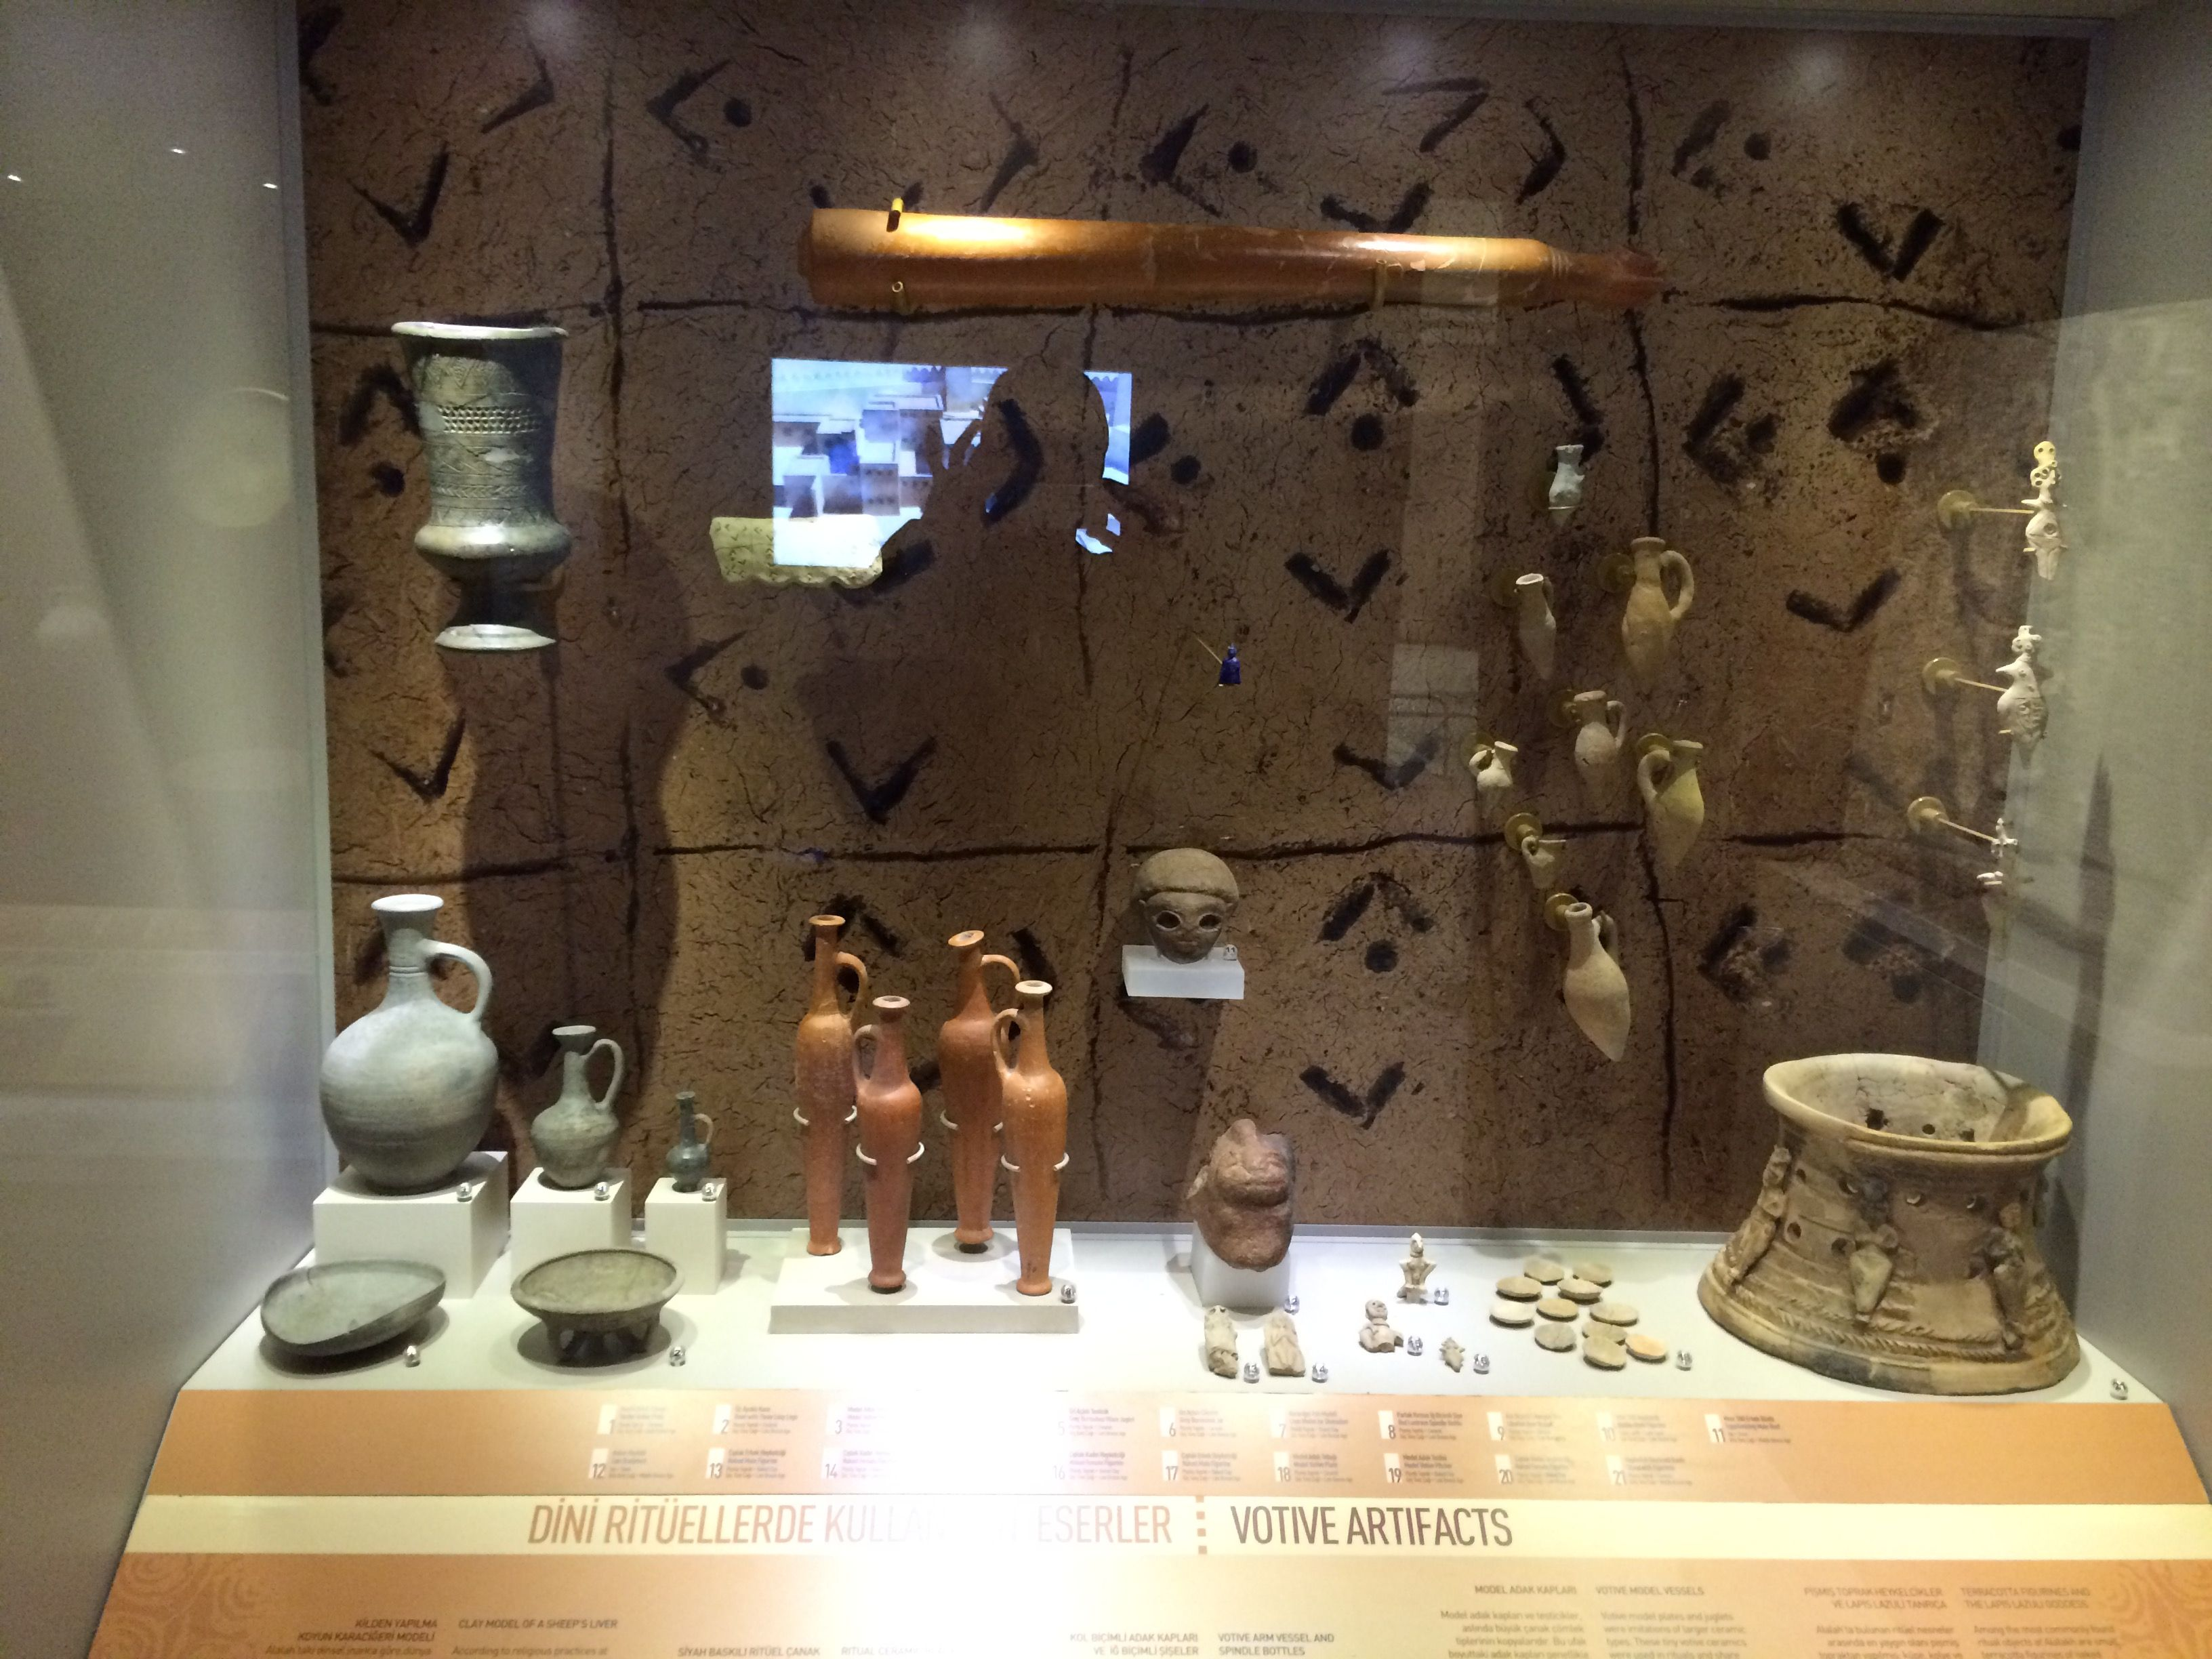 Hatay Archeology Museum - Votive Artifacts